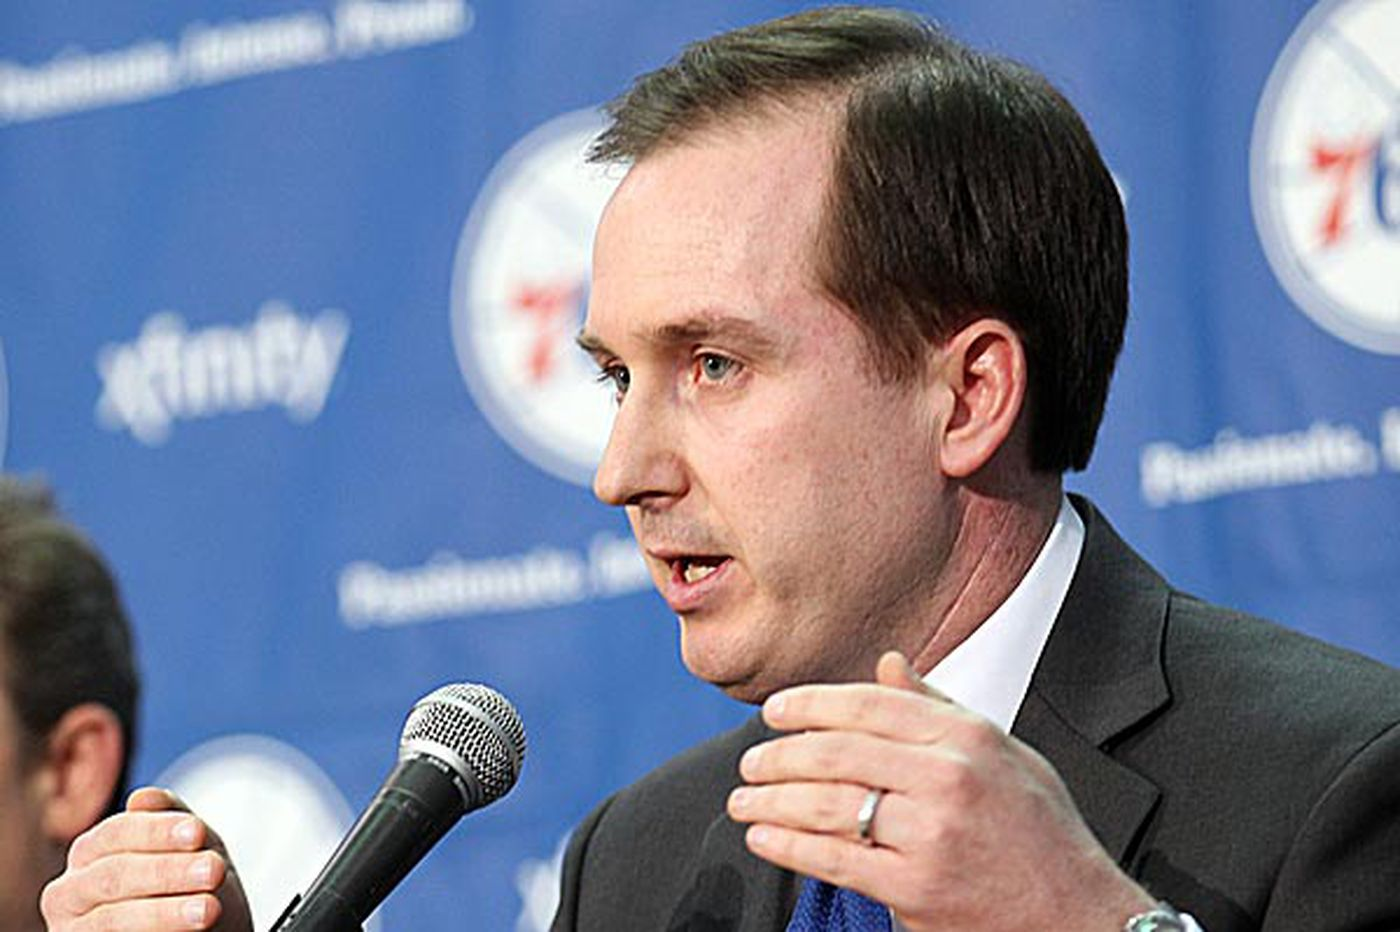 Sixers new GM Hinkie brings analytical approach to table